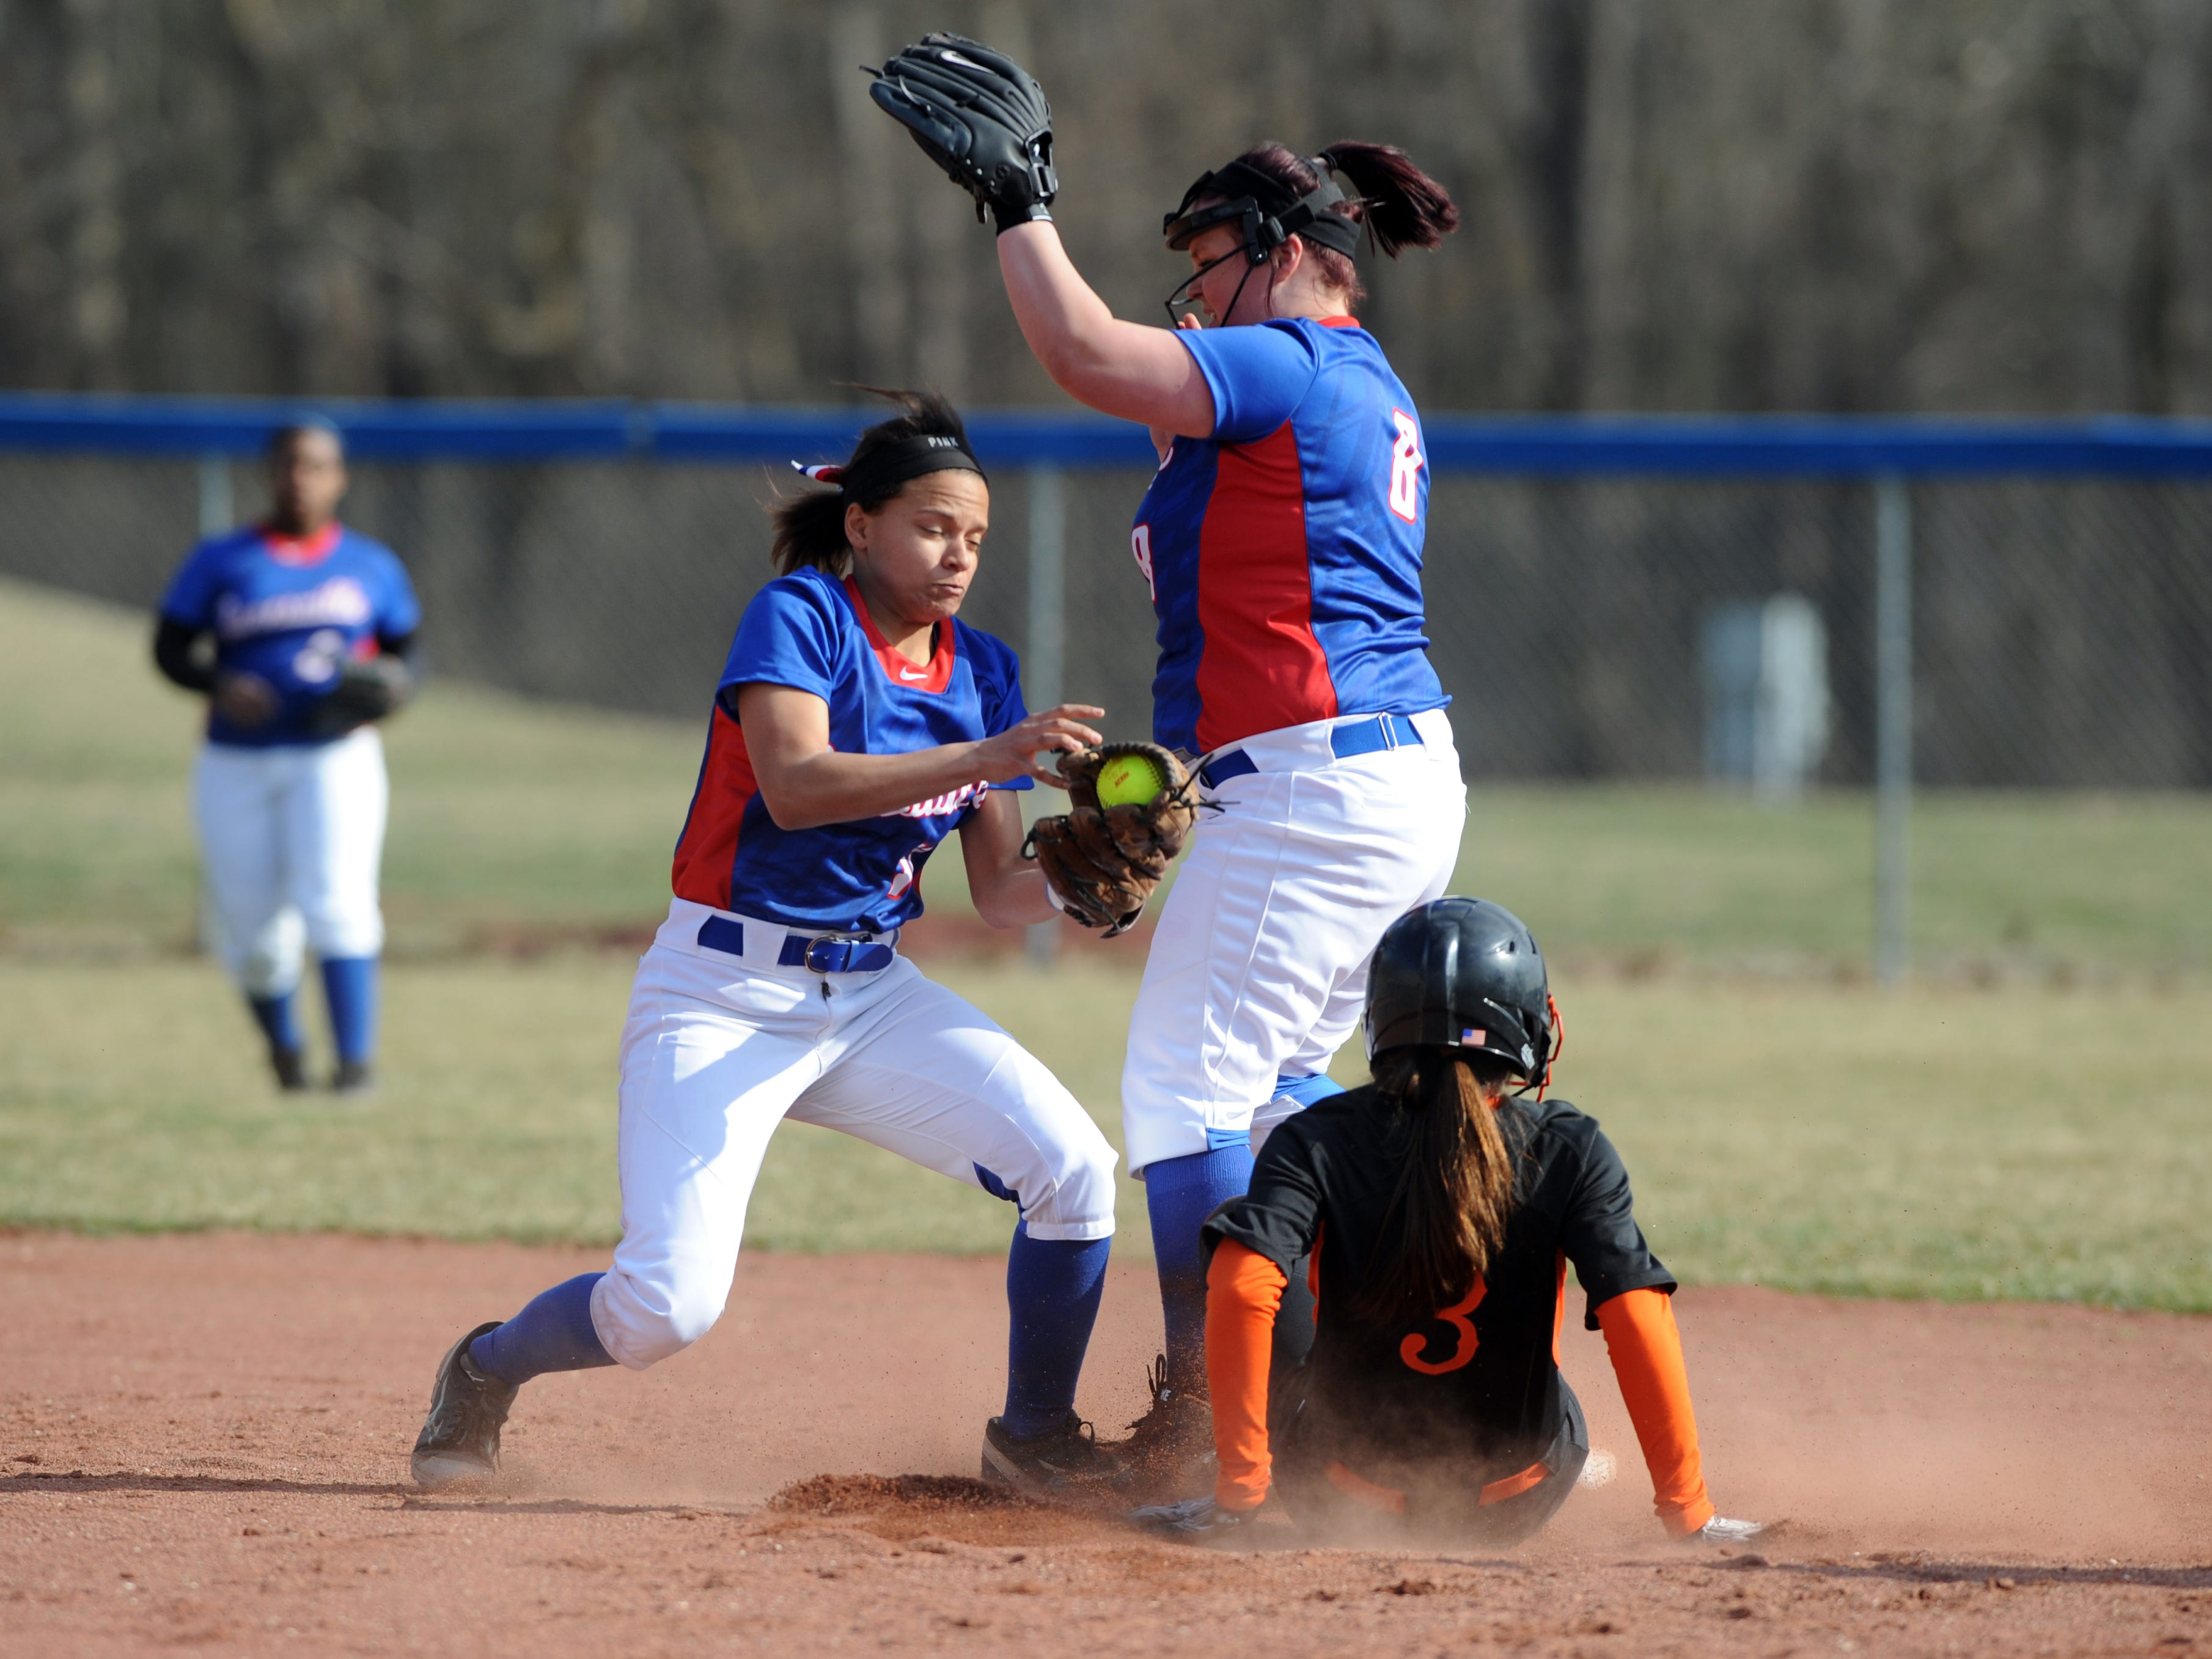 Marietta's Kendall Hartline safely slides into second base past Zanesville's Morgan Smith (12) during the first inning of a game at Zanesville High School.